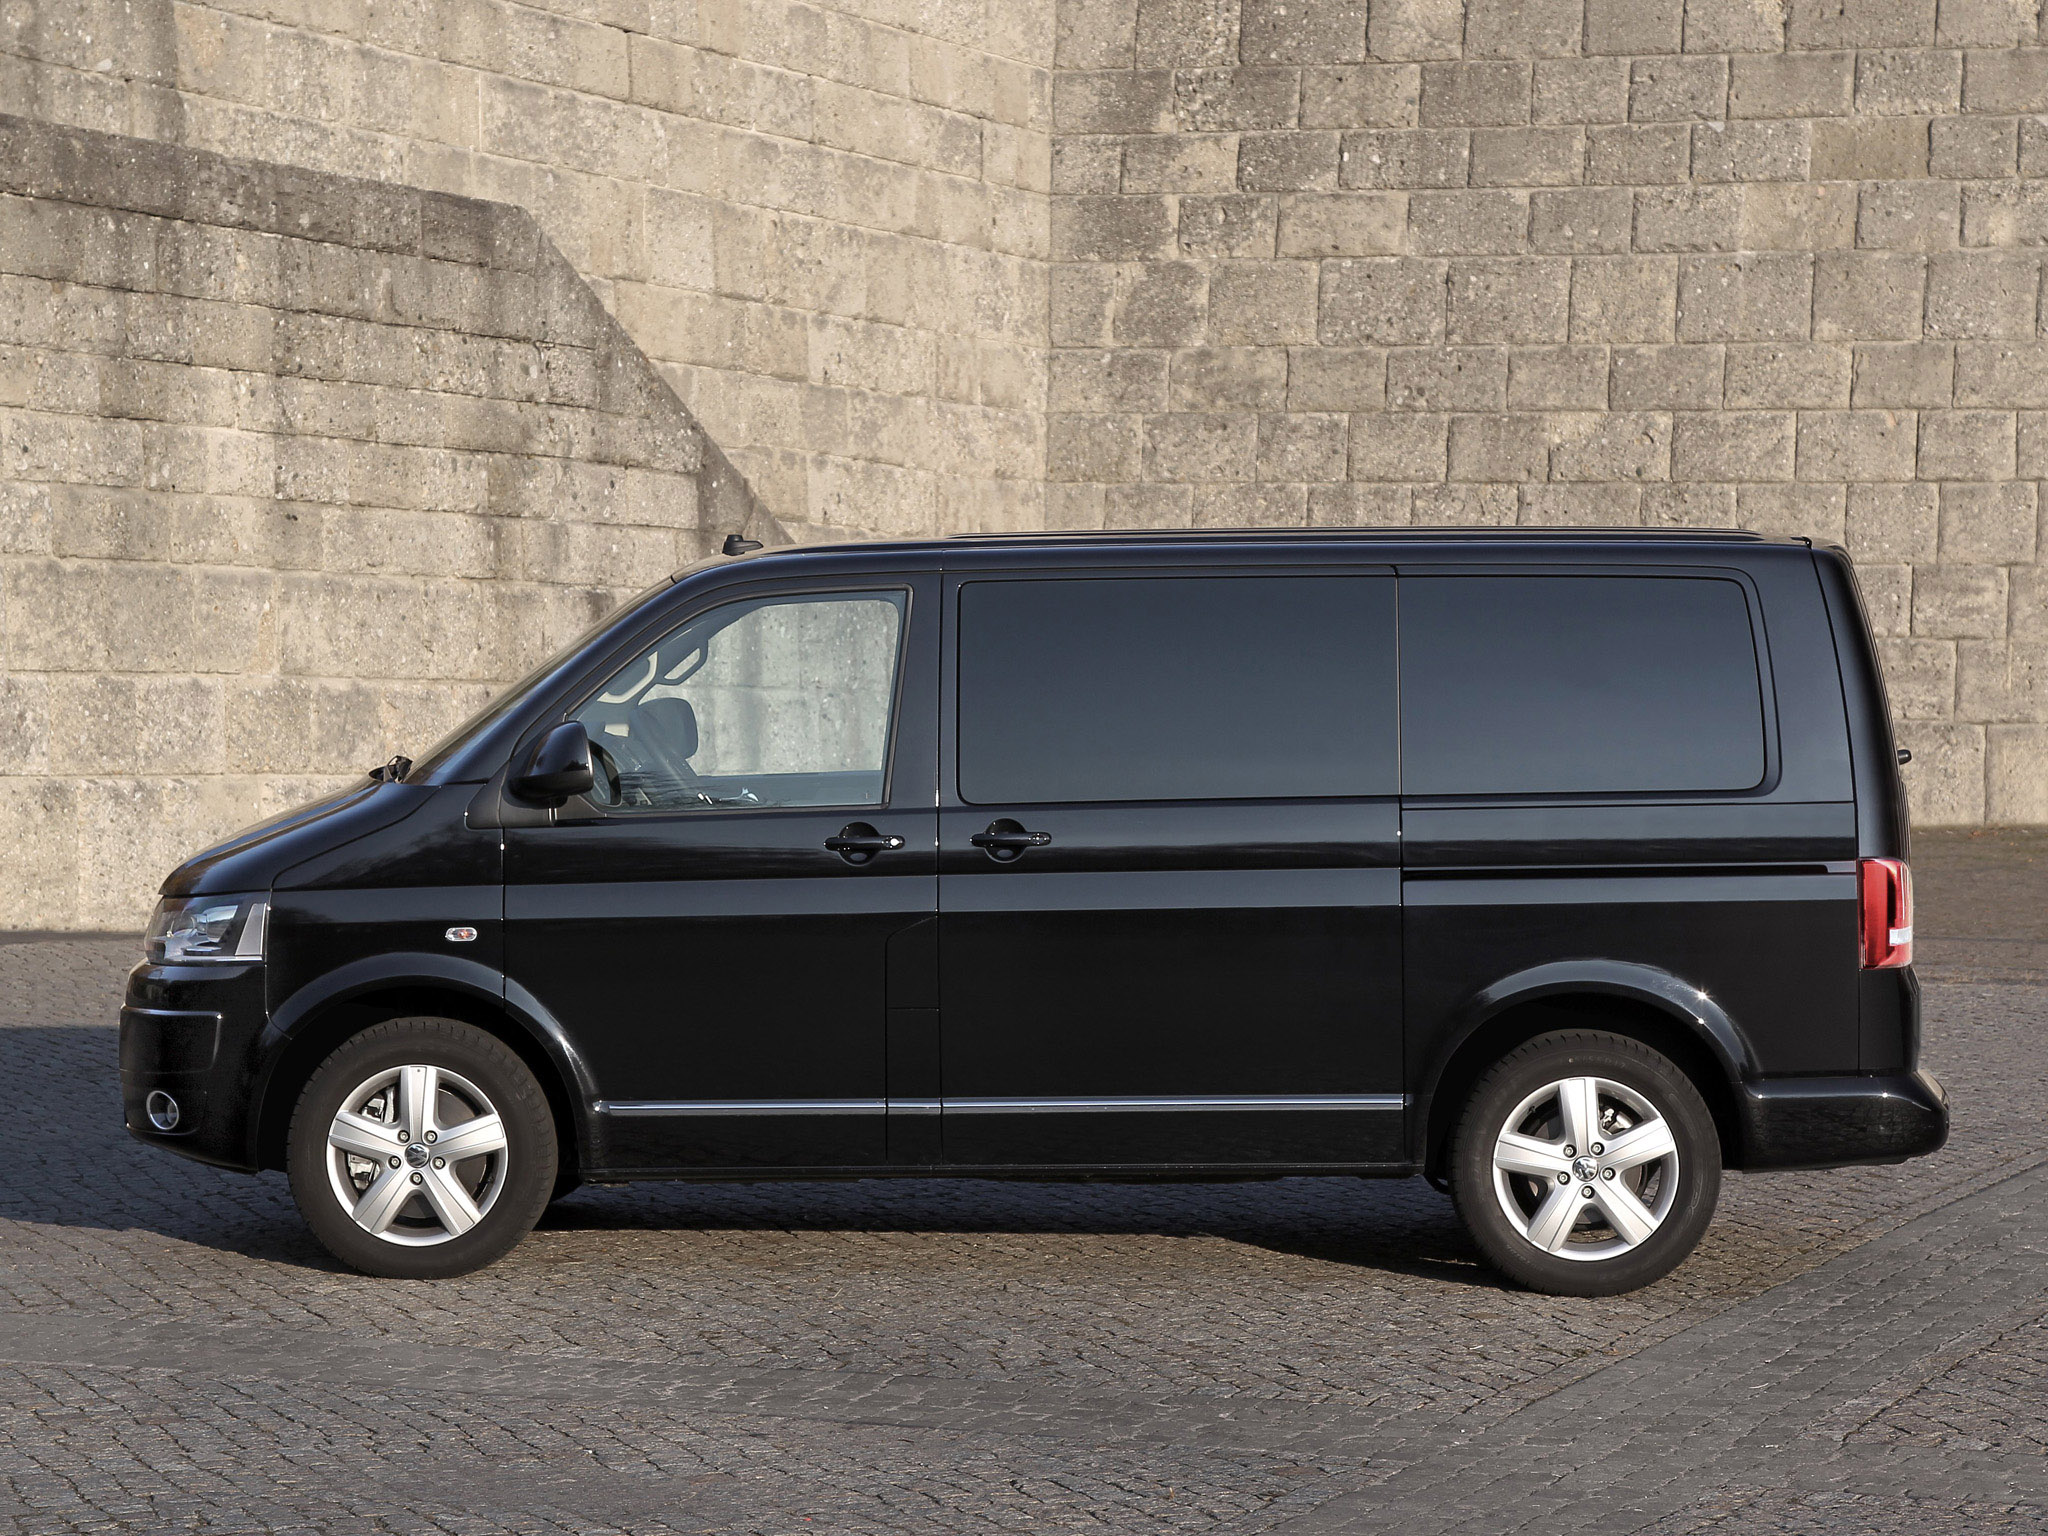 volkswagen t5 multivan business 2011 volkswagen t5 multivan business 2011 photo 04 car in. Black Bedroom Furniture Sets. Home Design Ideas